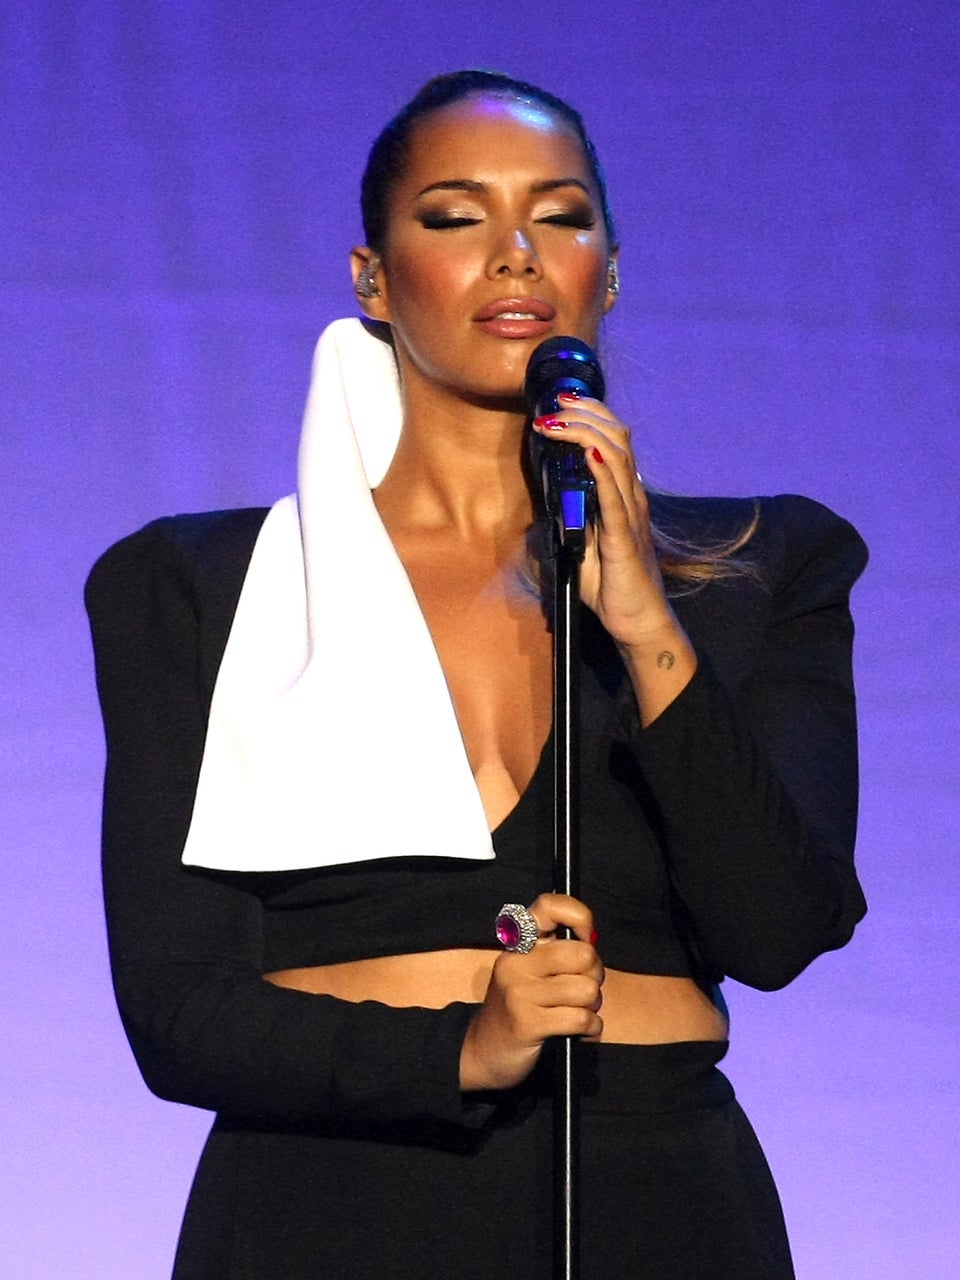 Must-Listen: Hear Leona Lewis' New Song 'O Holy Night'